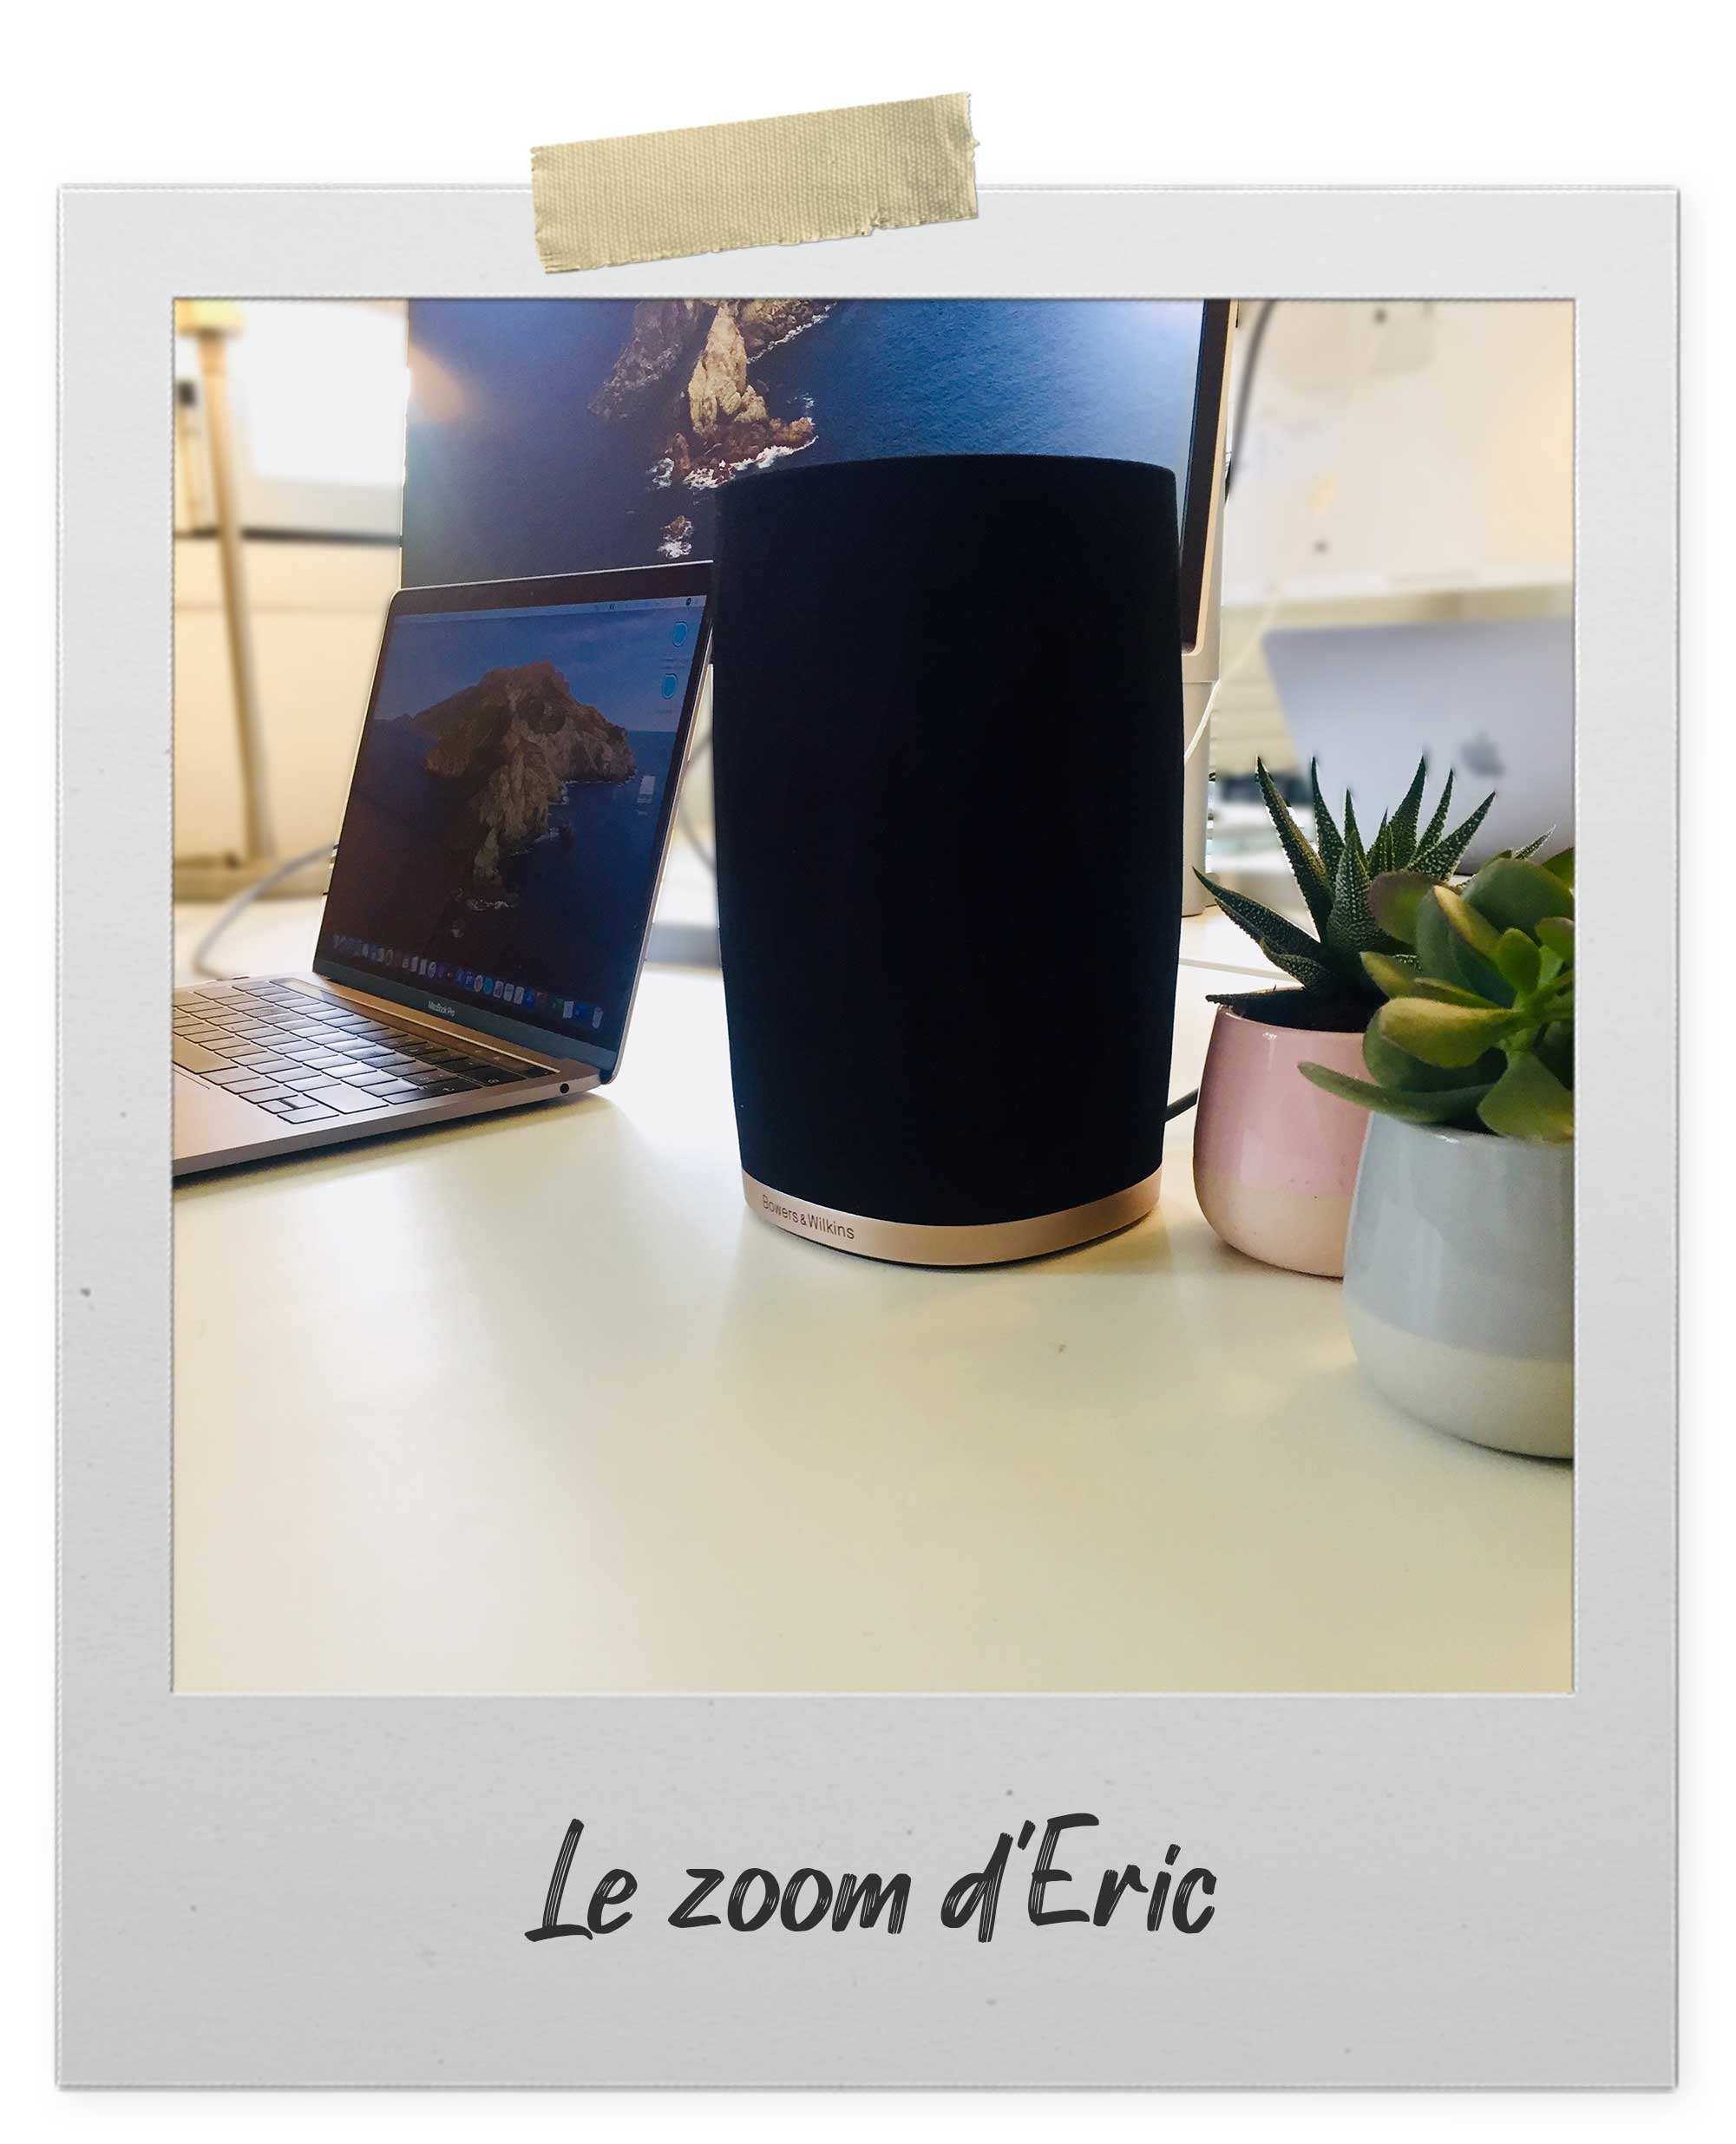 Bowers & Wilkins Formation - Enceintes connectées design multiroom WiFi, Bluetooth et AirPlay 2